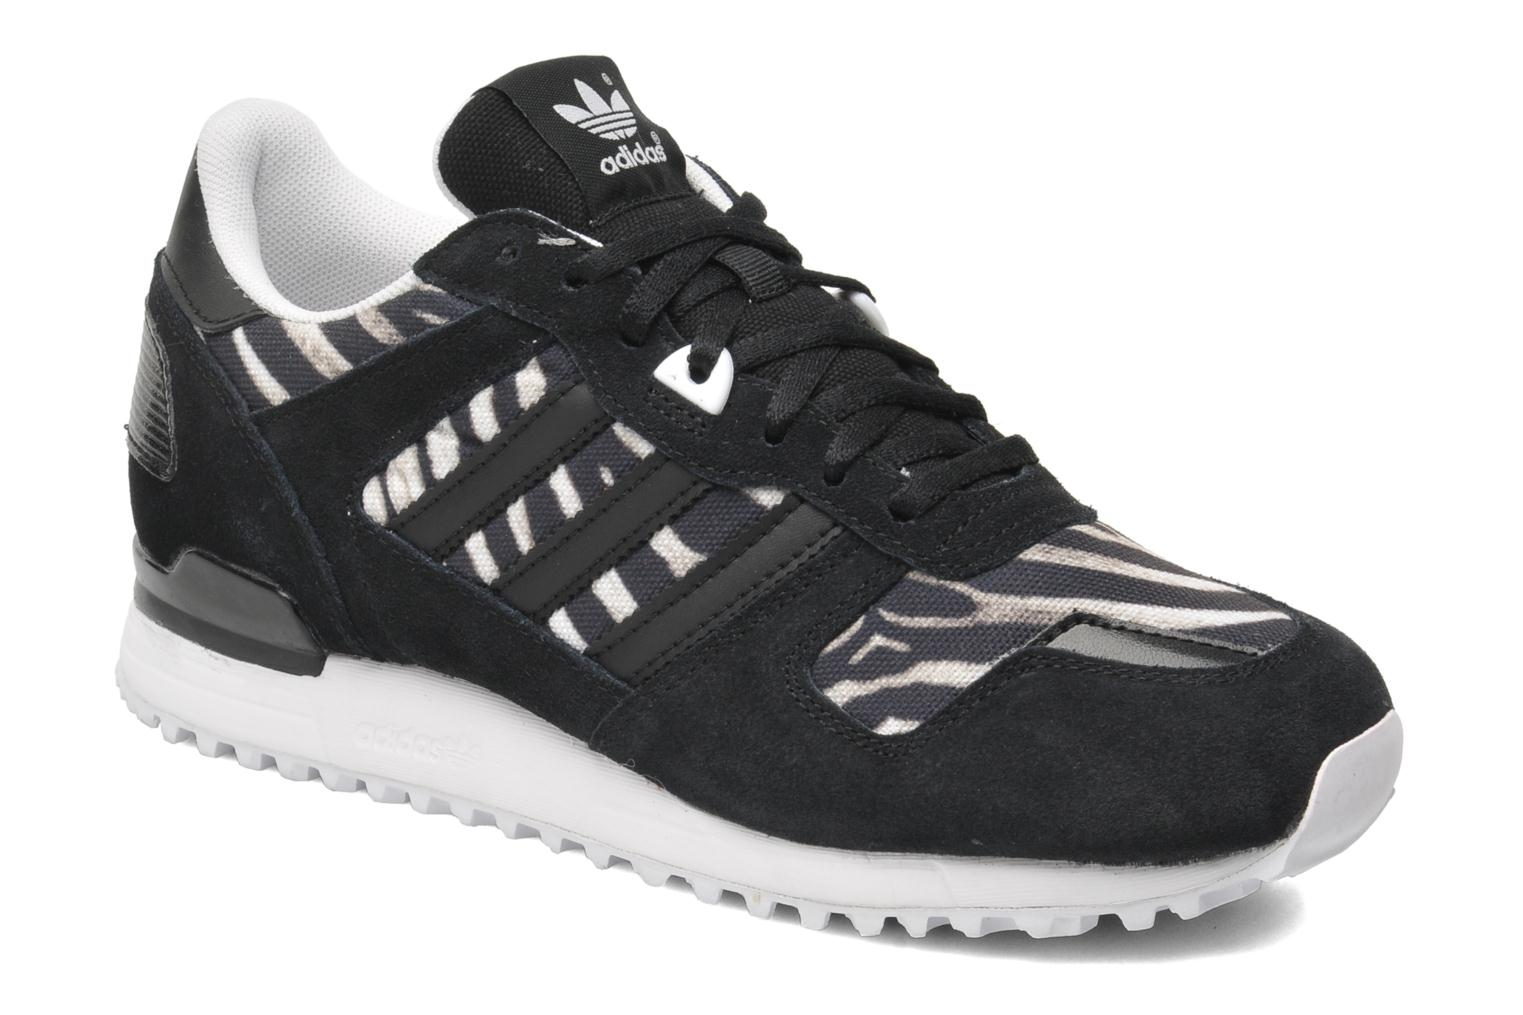 pretty nice a0143 aaf39 ... coupon code for trainers adidas originals zx 700 w black detailed view  pair view 4b07e 46826